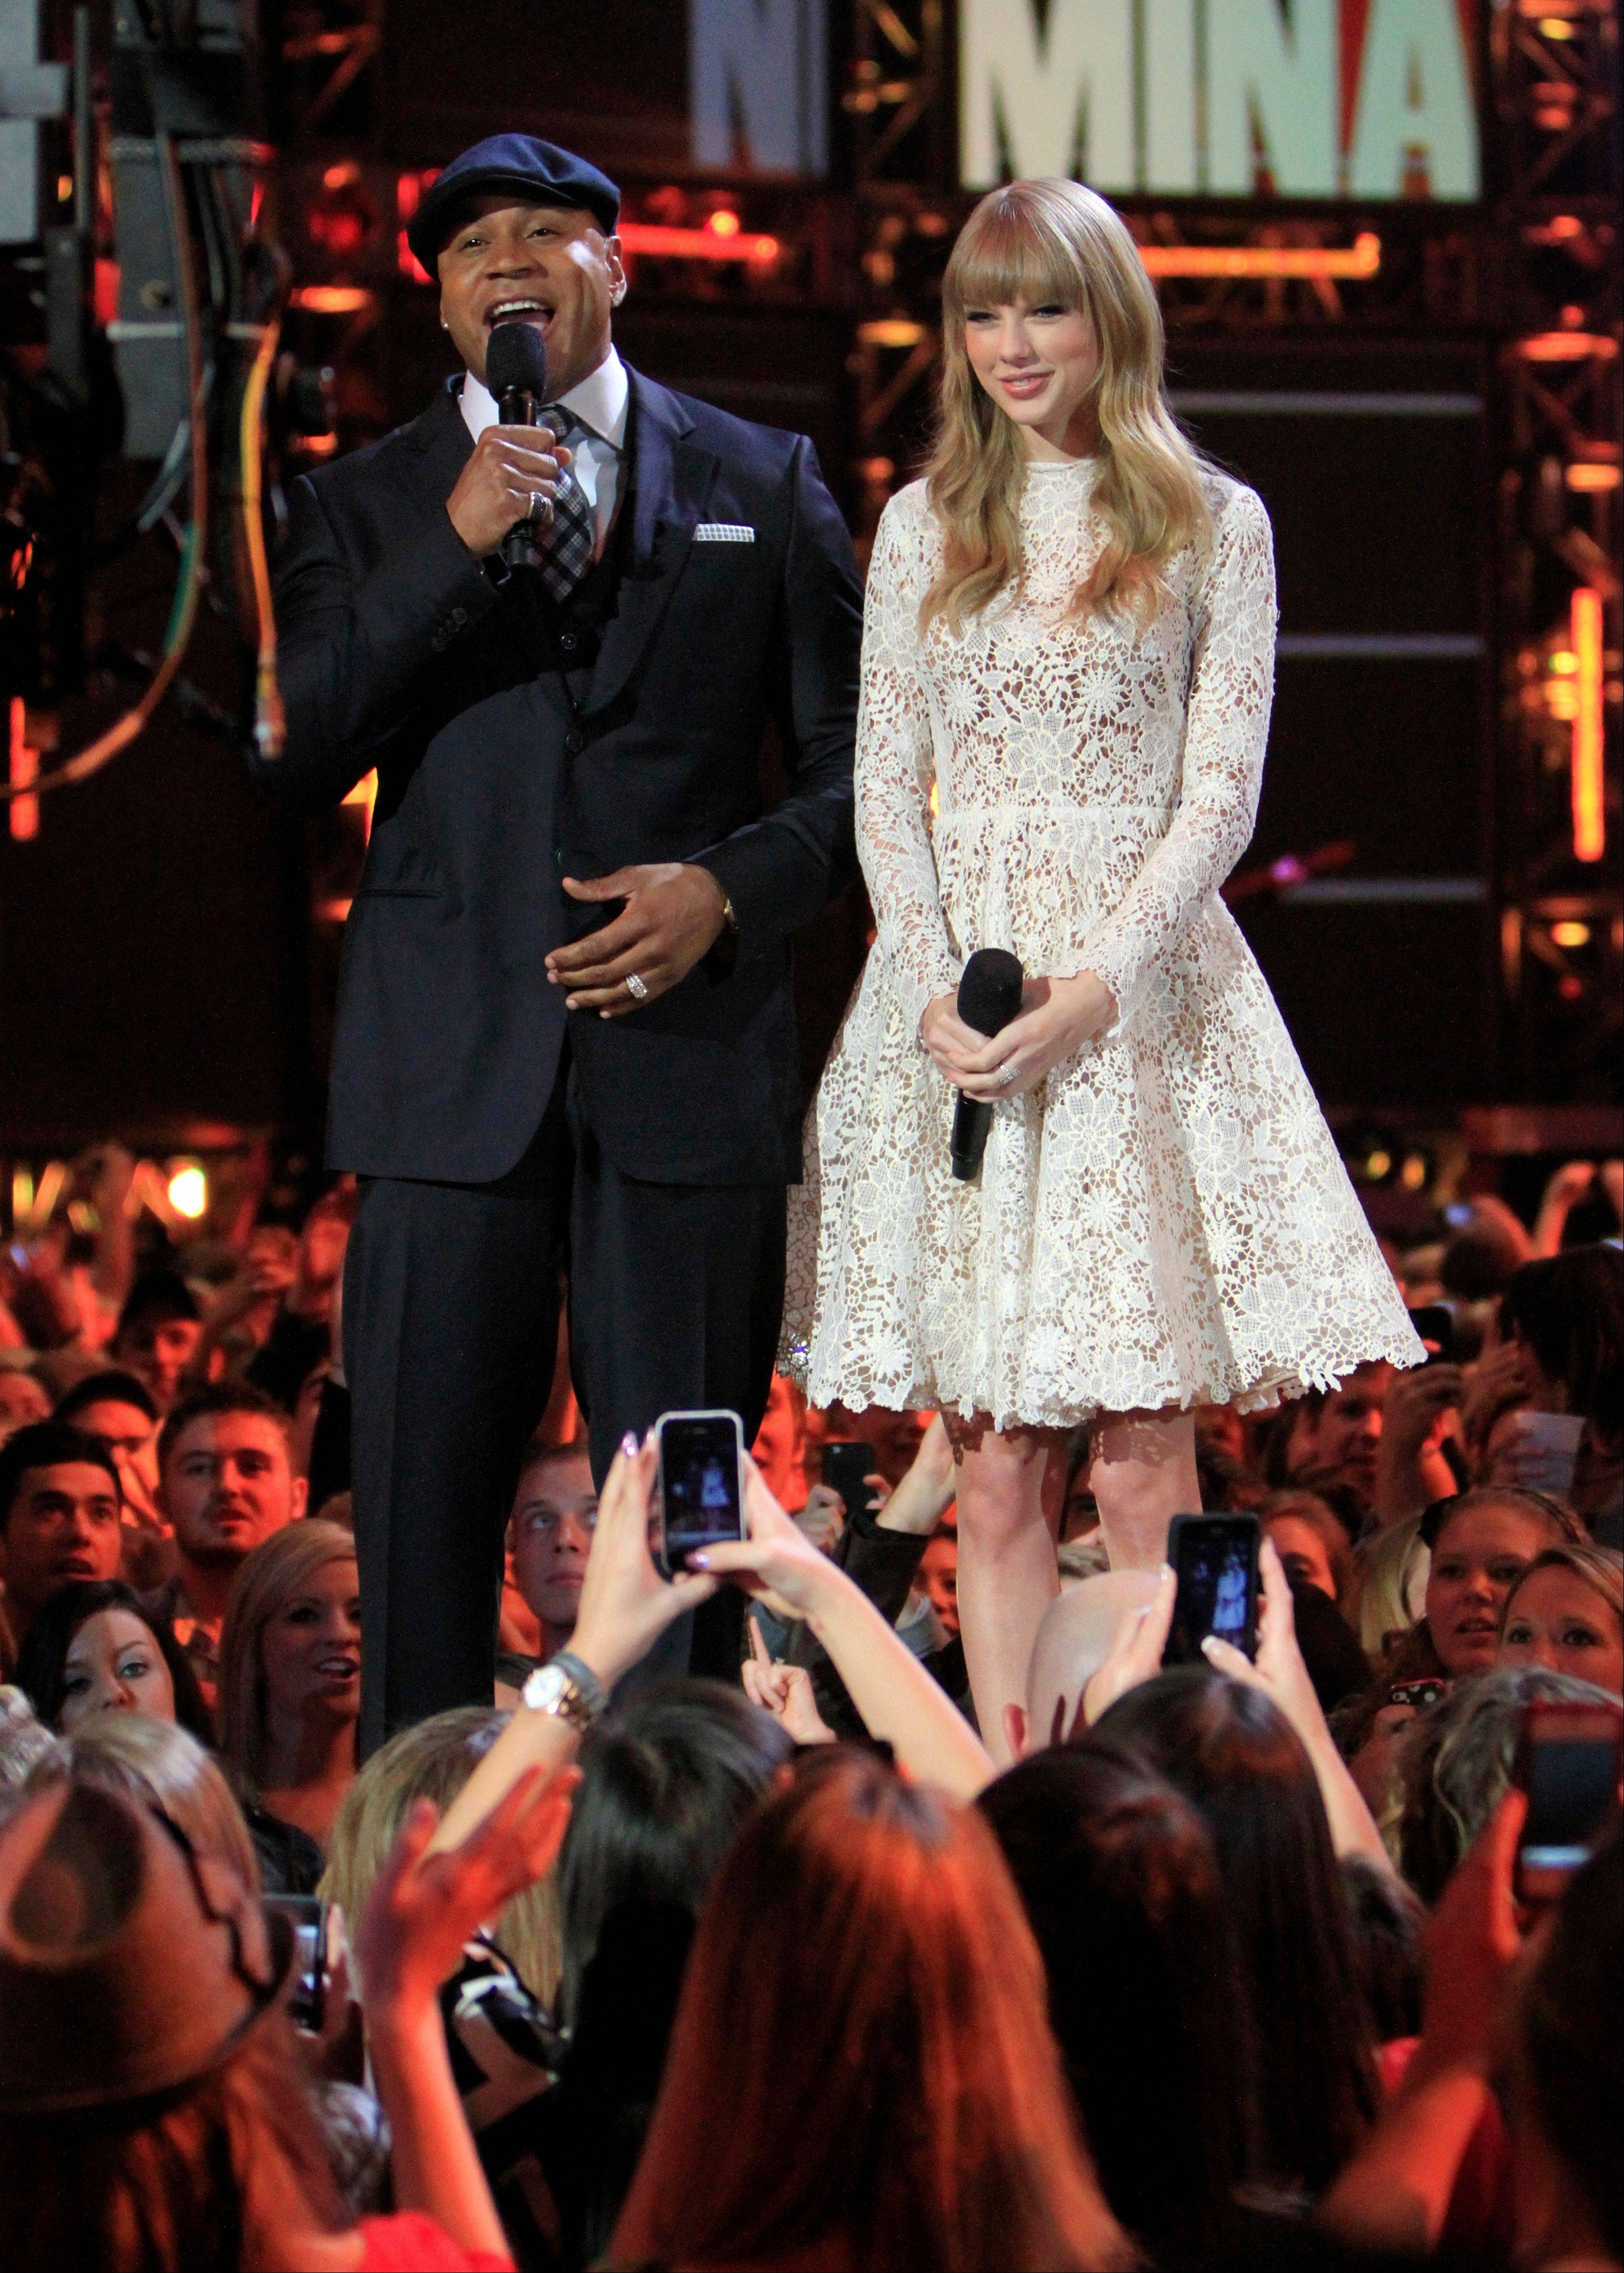 Hosts LL Cool J and Taylor Swift speak during the Grammy Nominations Concert Live! Wednesday night at Bridgestone Arena in Nashville.